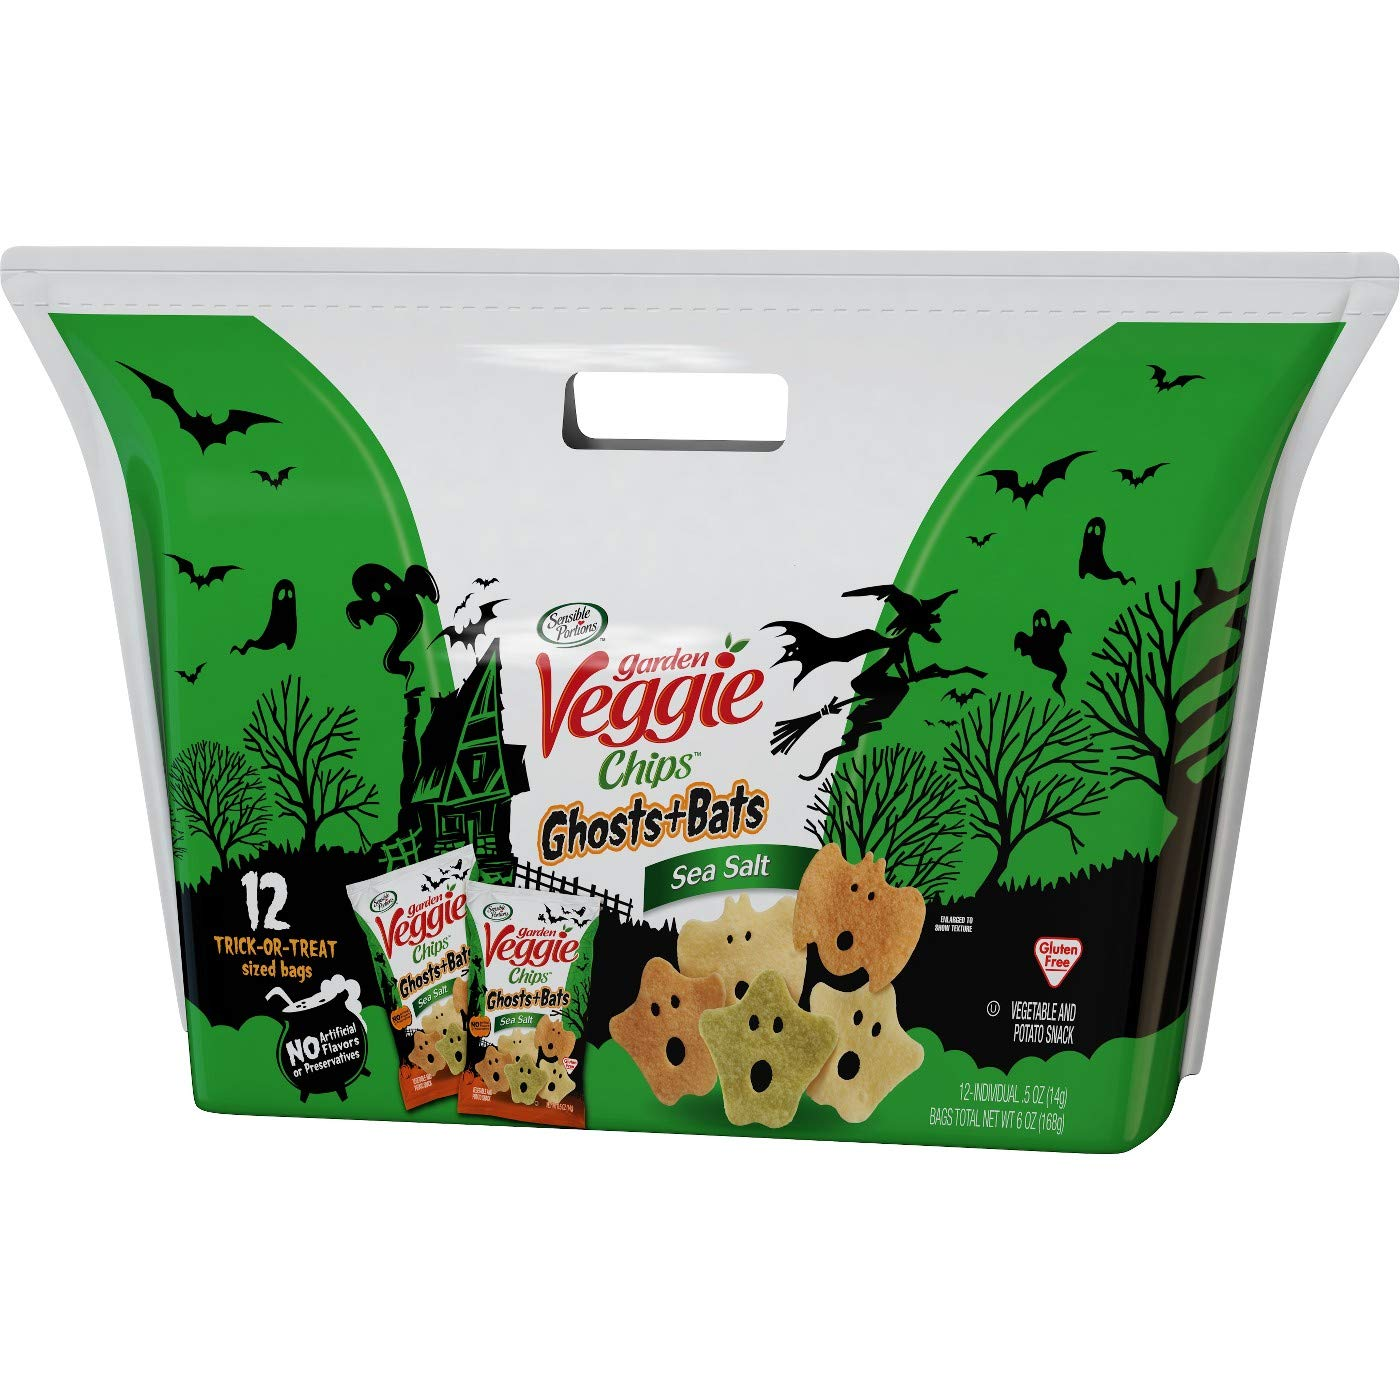 Garden Veggie Chips - Halloween Treat Bags - Shapes of Ghosts & Bats - Sea Salt Flavored 12 - .5 Oz Bags by Sensible Portions